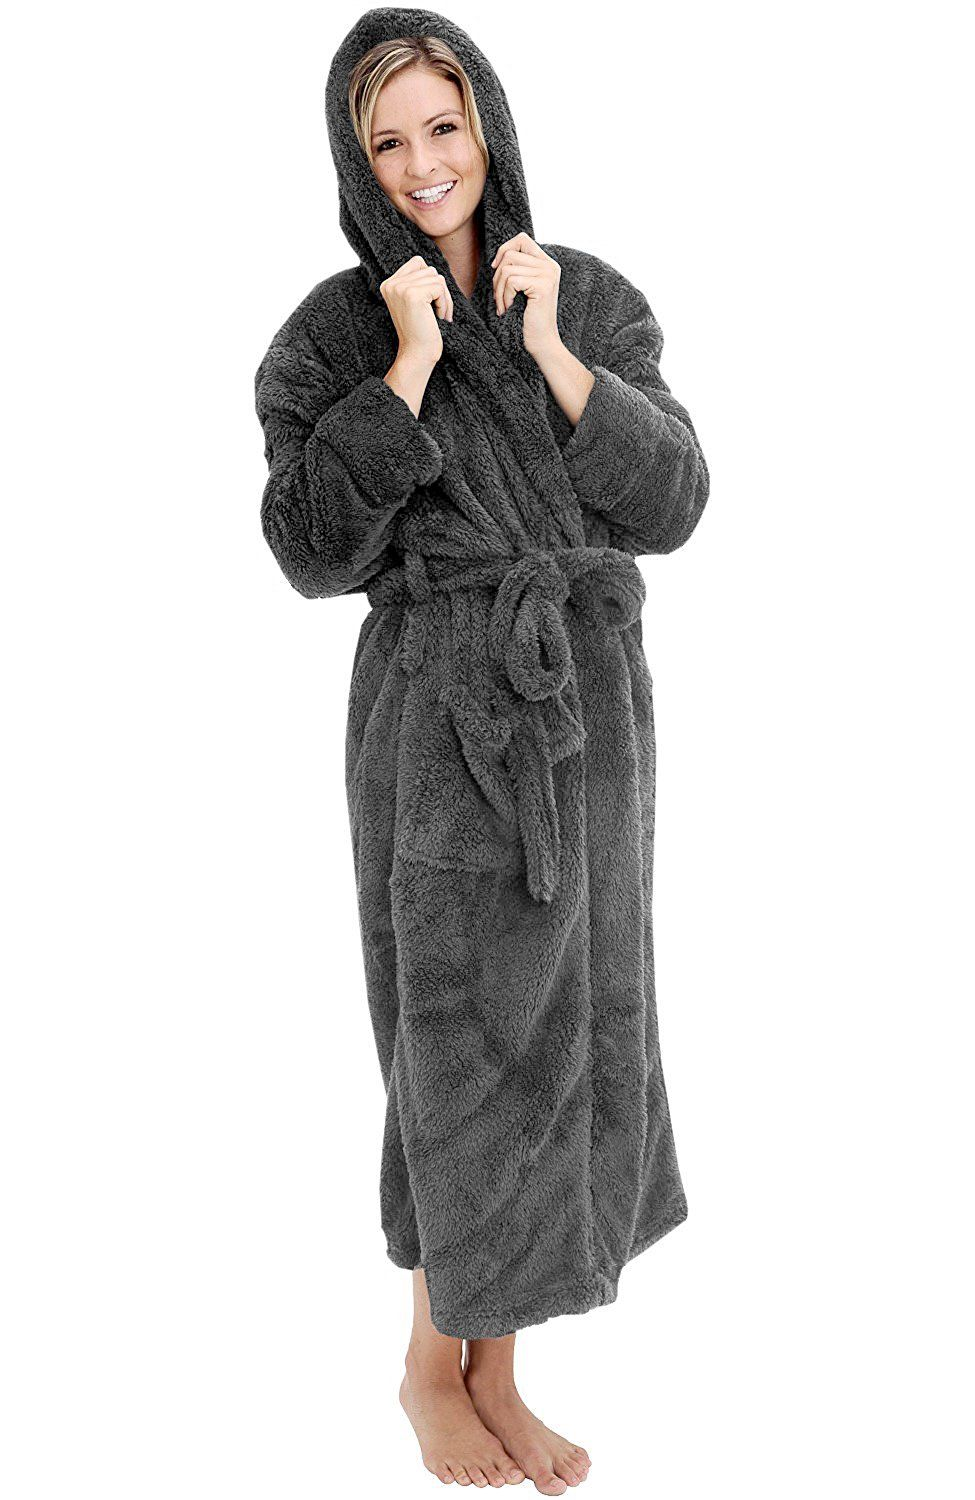 Alexander Del Rossa Womens Fleece Robe 095846c61